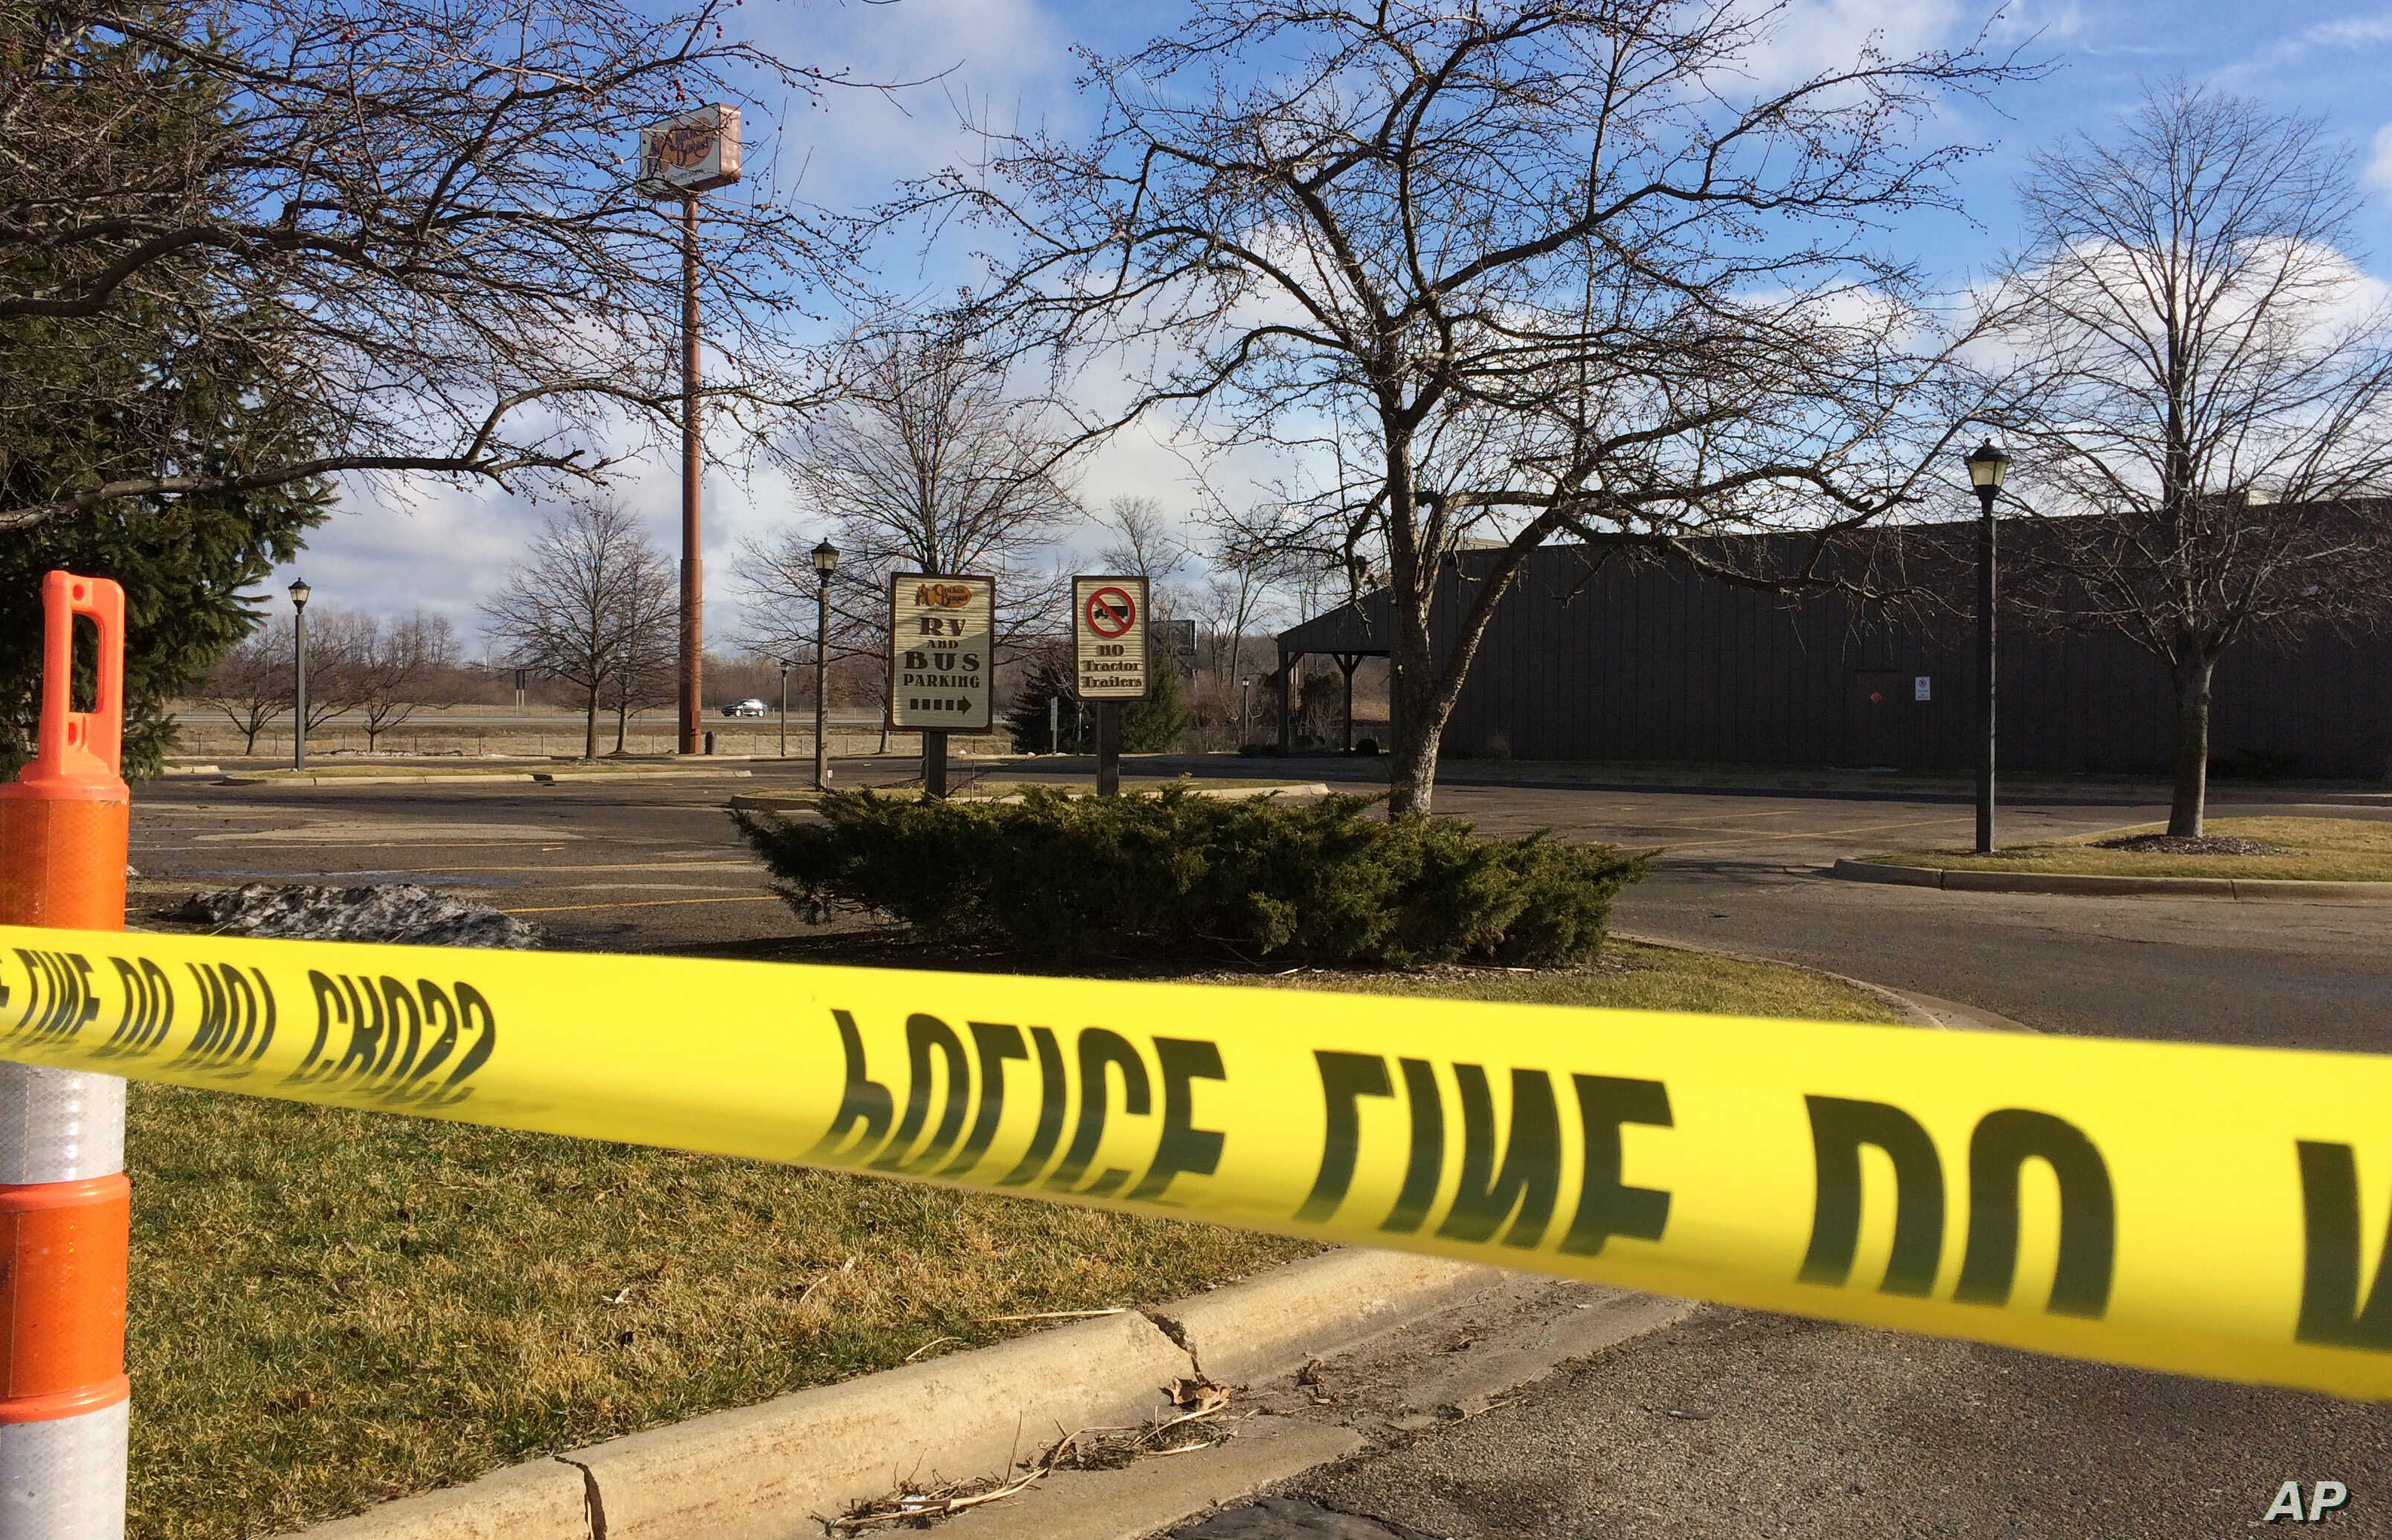 Police tape surrounds the area of a random shooting on Sunday in Kalamazoo, Mich., Feb. 21, 2016.